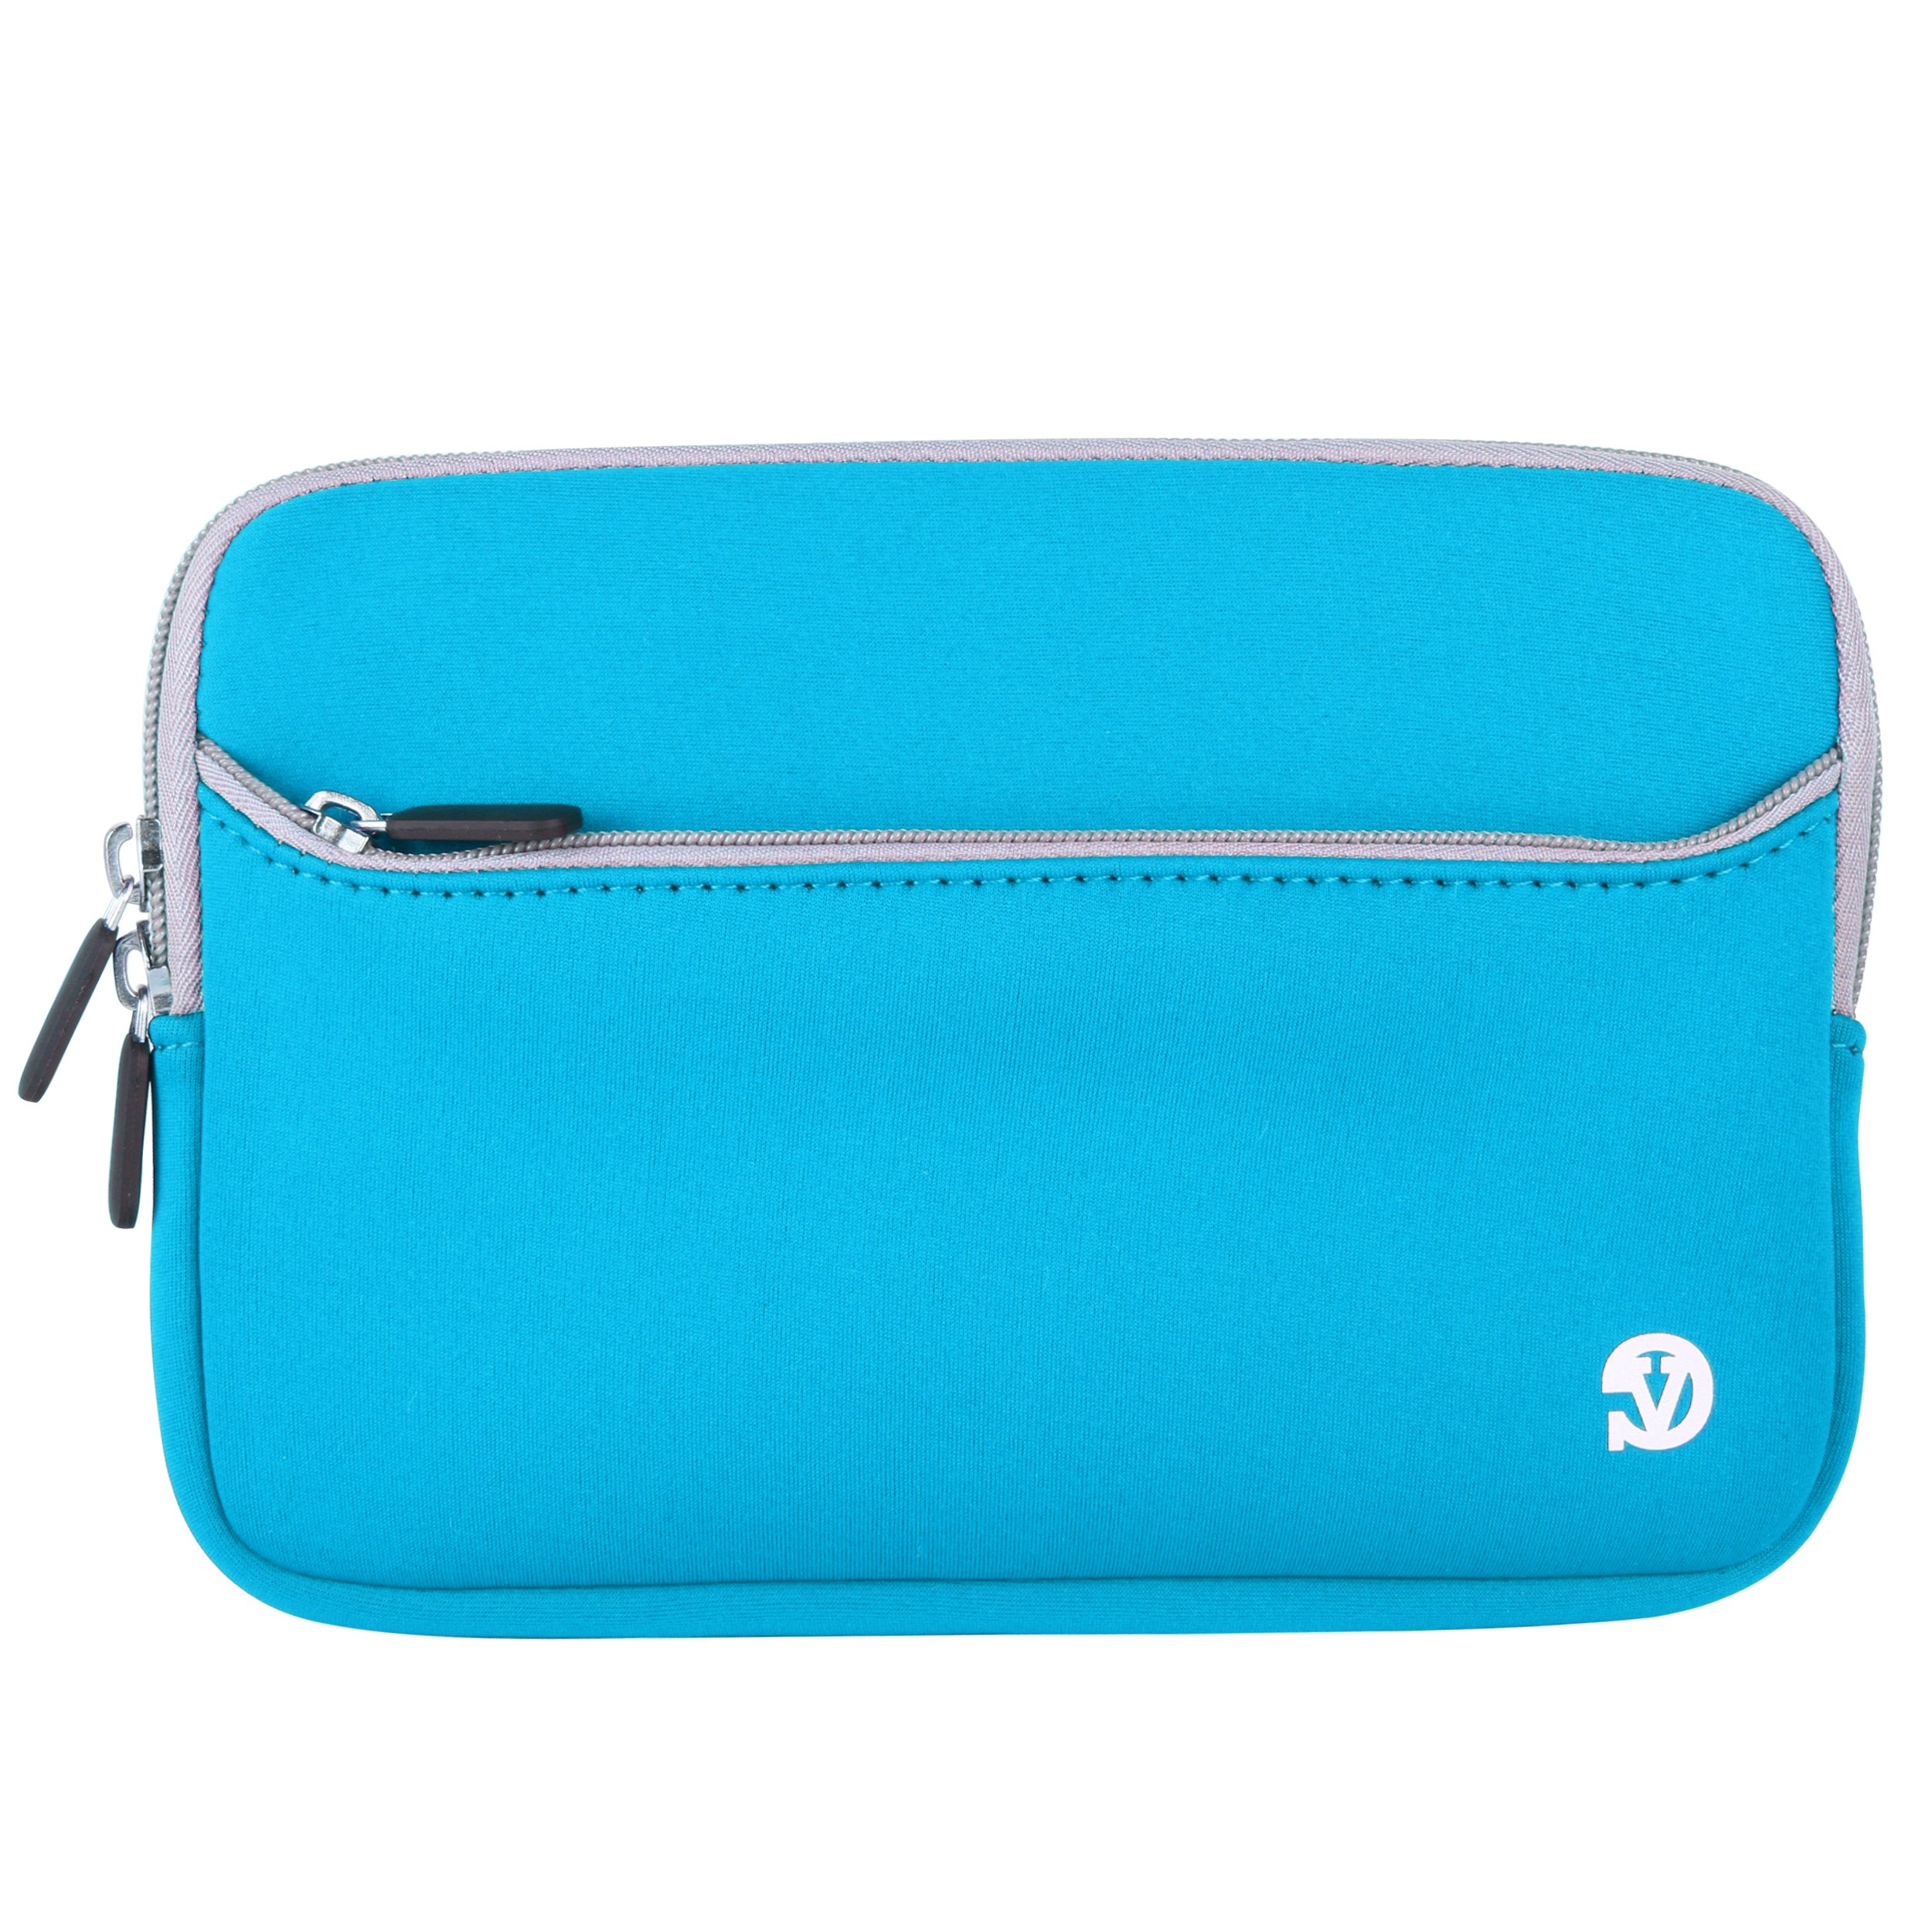 VanGoddy Sky Blue w/Grey Trim Protective Neoprene Zippered Sleeve Compatible with Lenovo Tab 3 7/Tab 3 Essential 7''